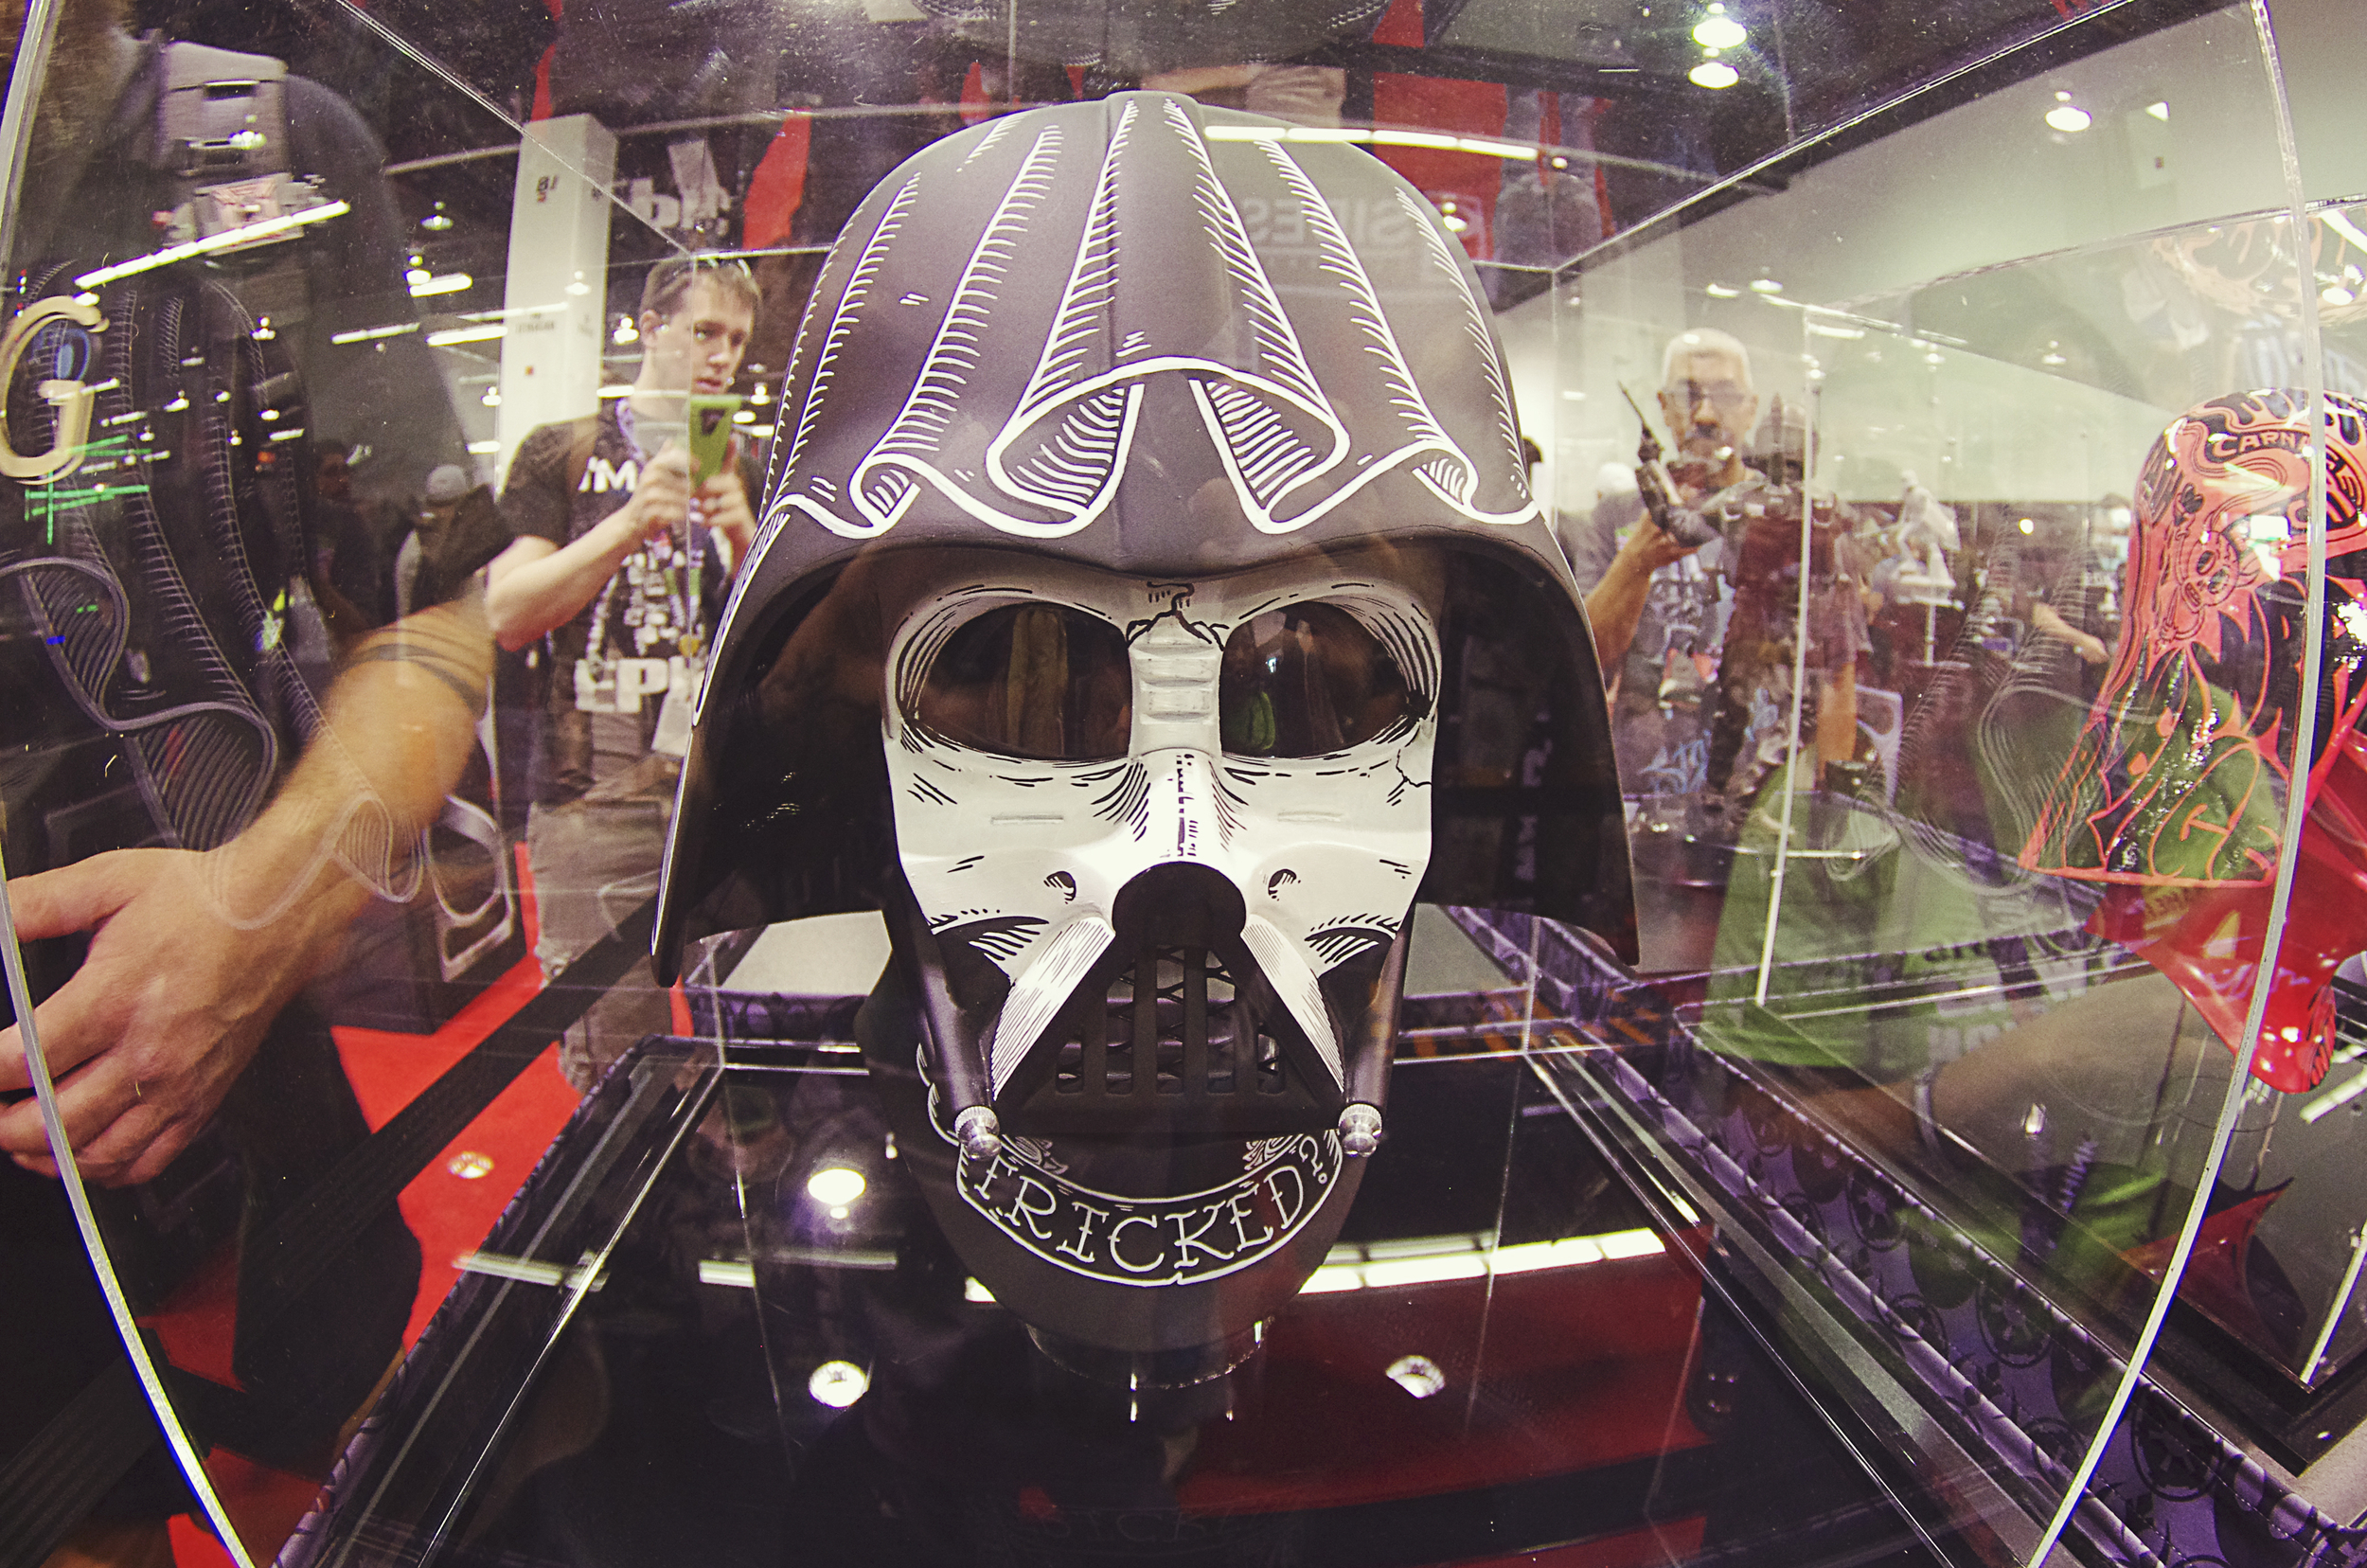 A few of the custom Vader helmets from LA also made an appearance.